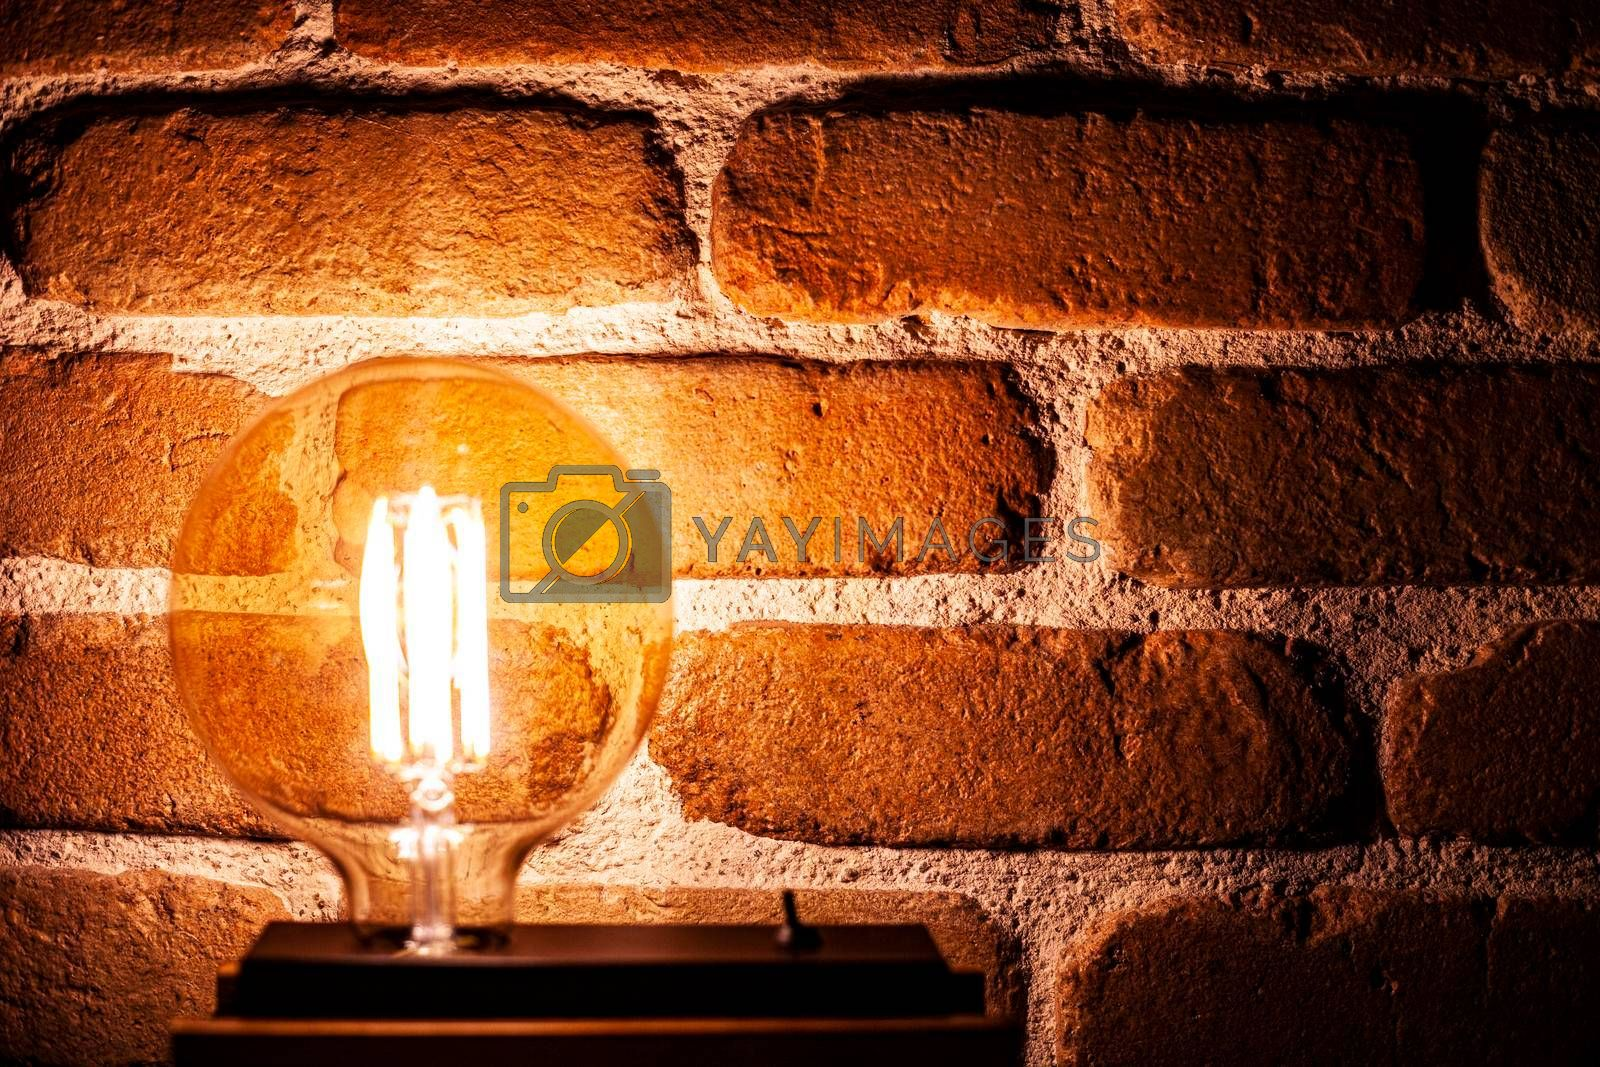 Illuminated grunge red brick wall background with copy space.